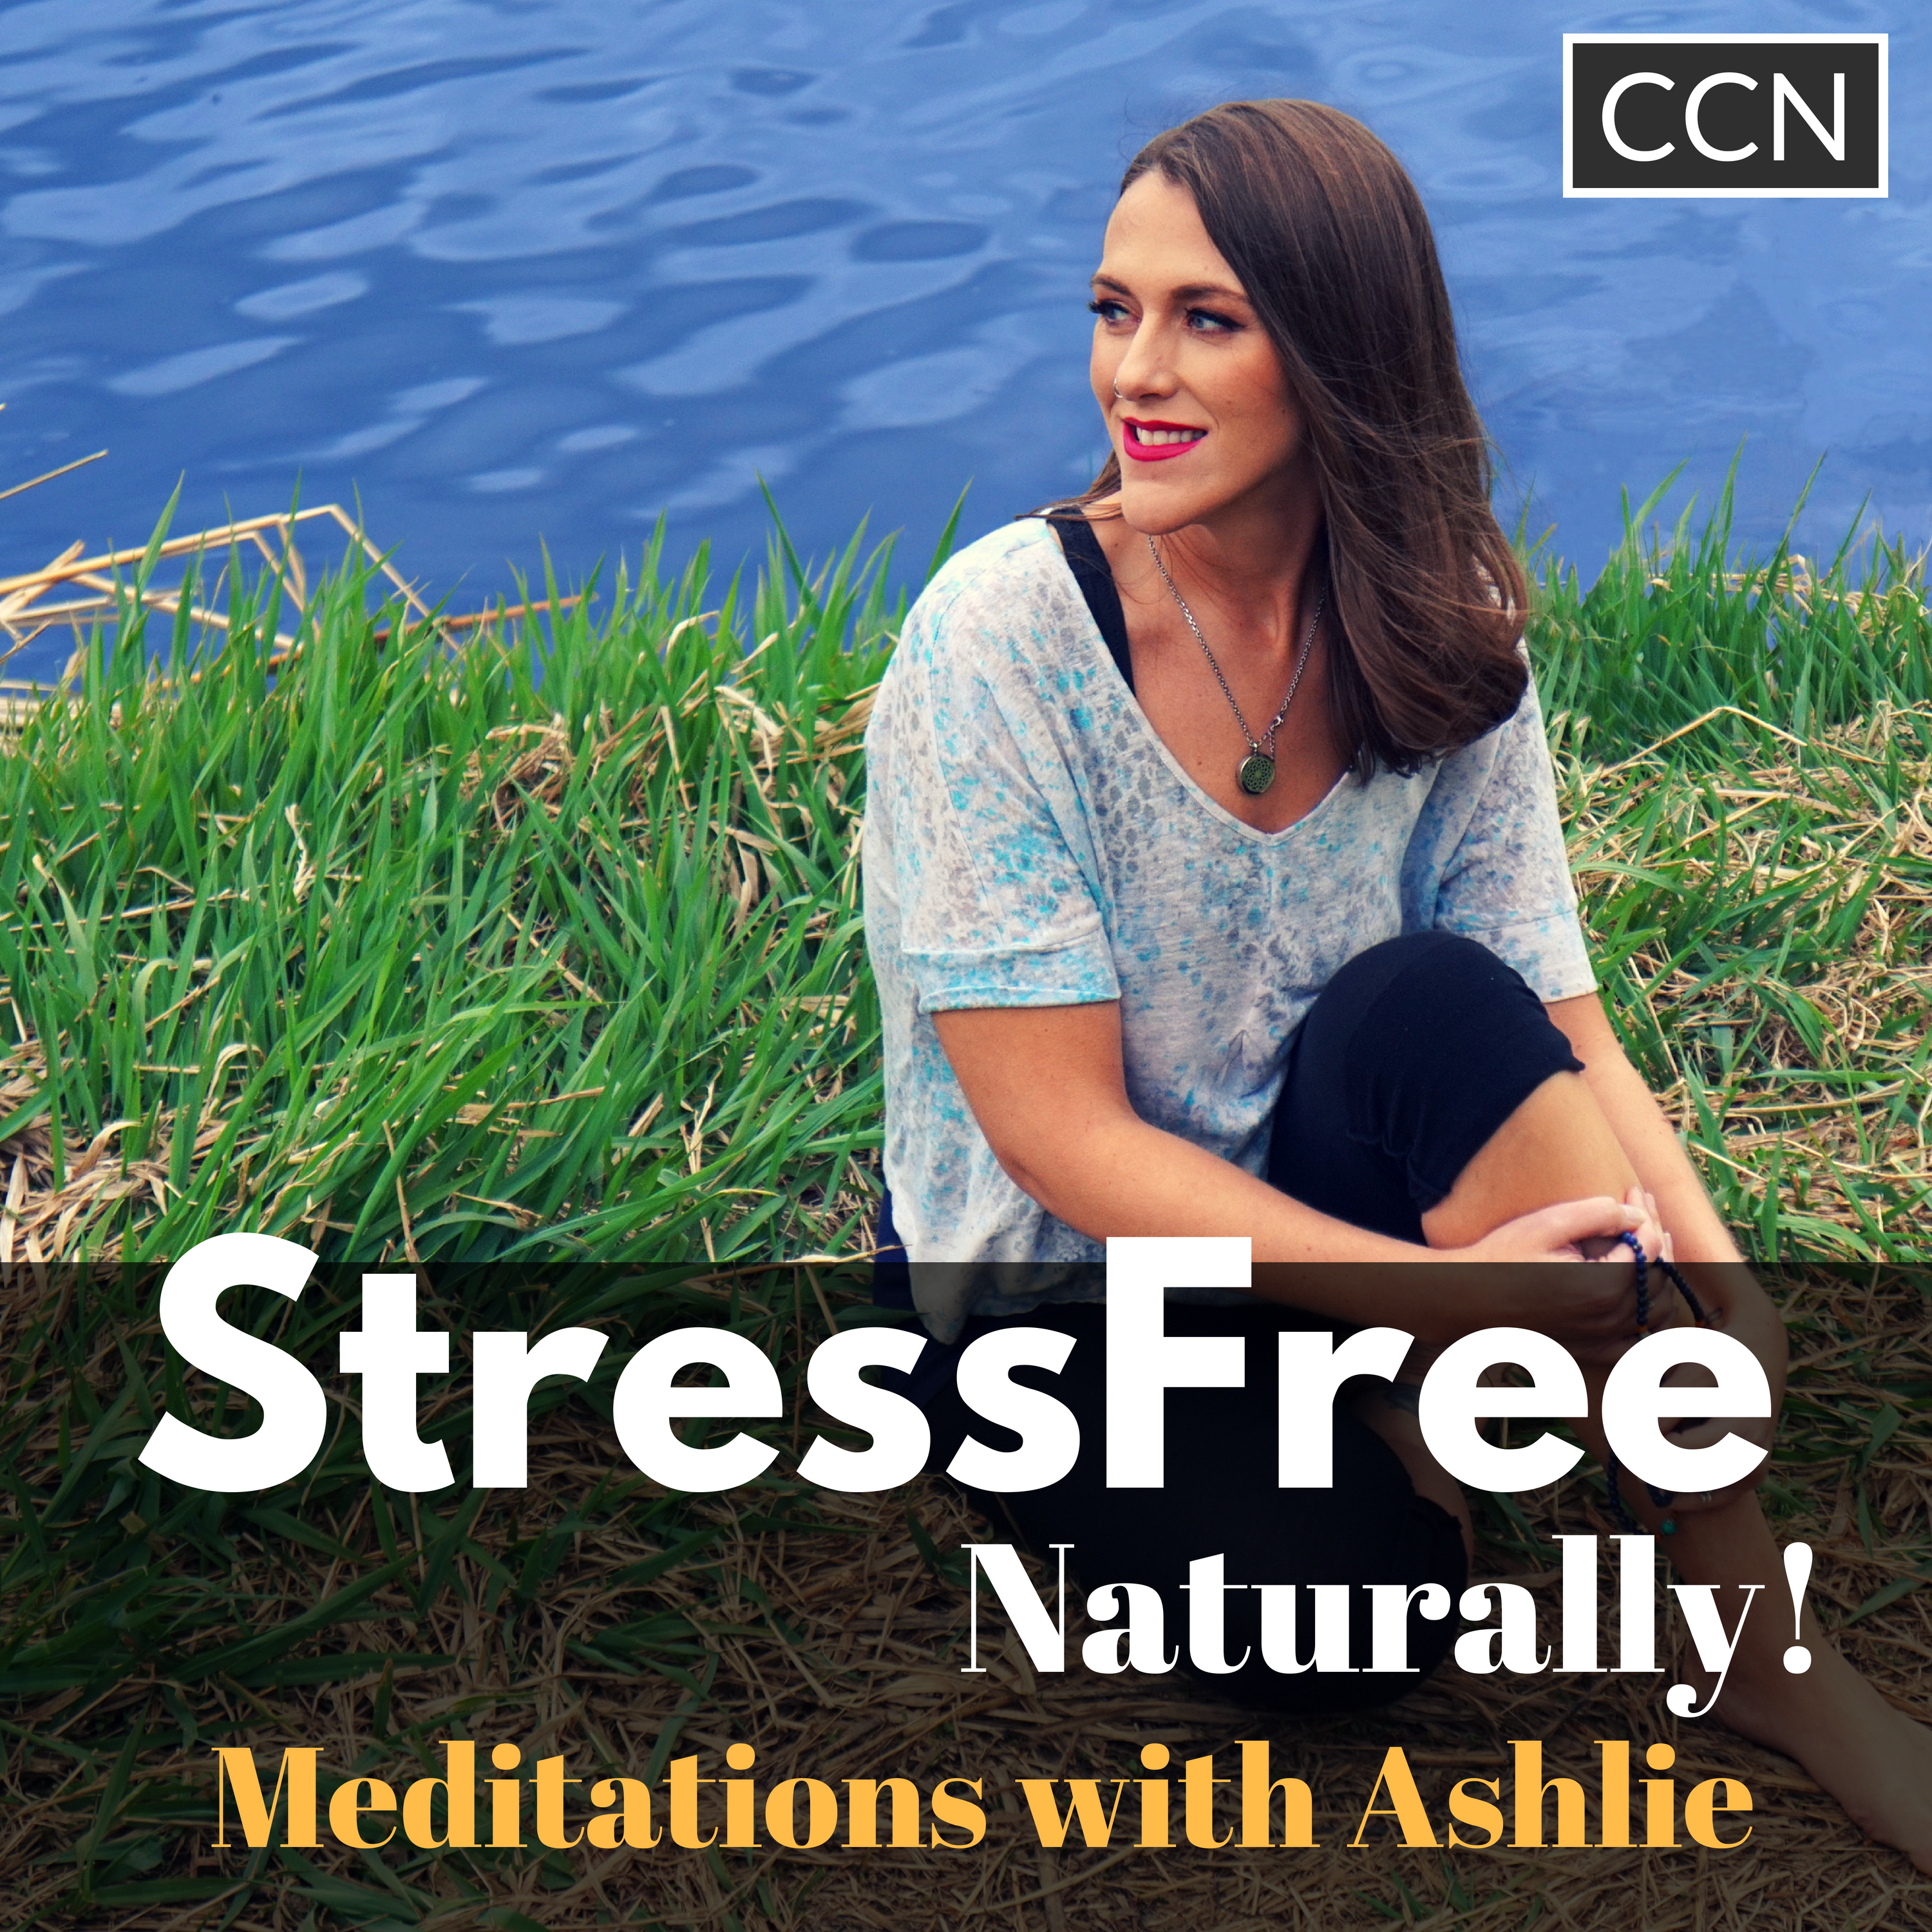 Stress Free Naturally - Meditations with Ashlie show art